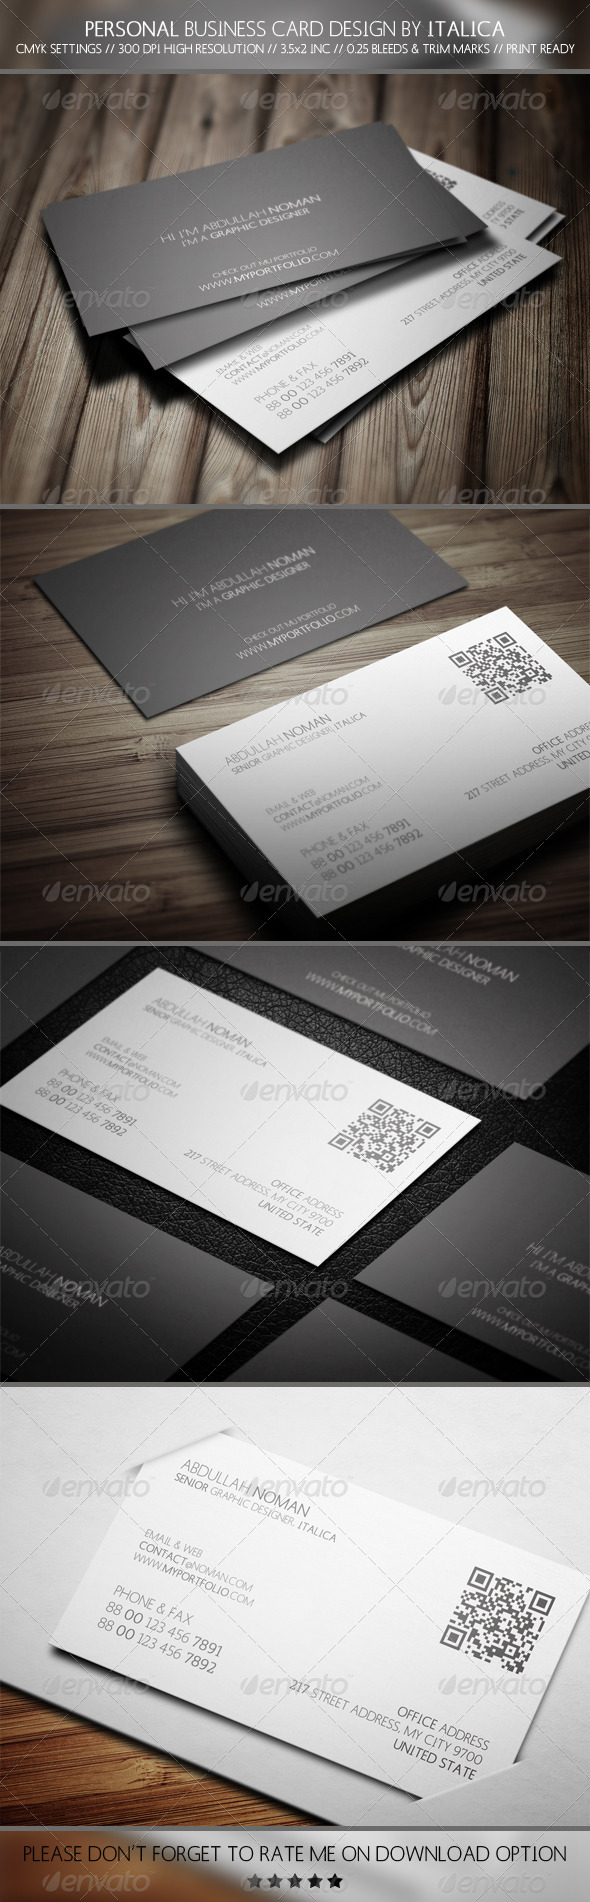 GraphicRiver Personale Business Card Design by Italica 5760111